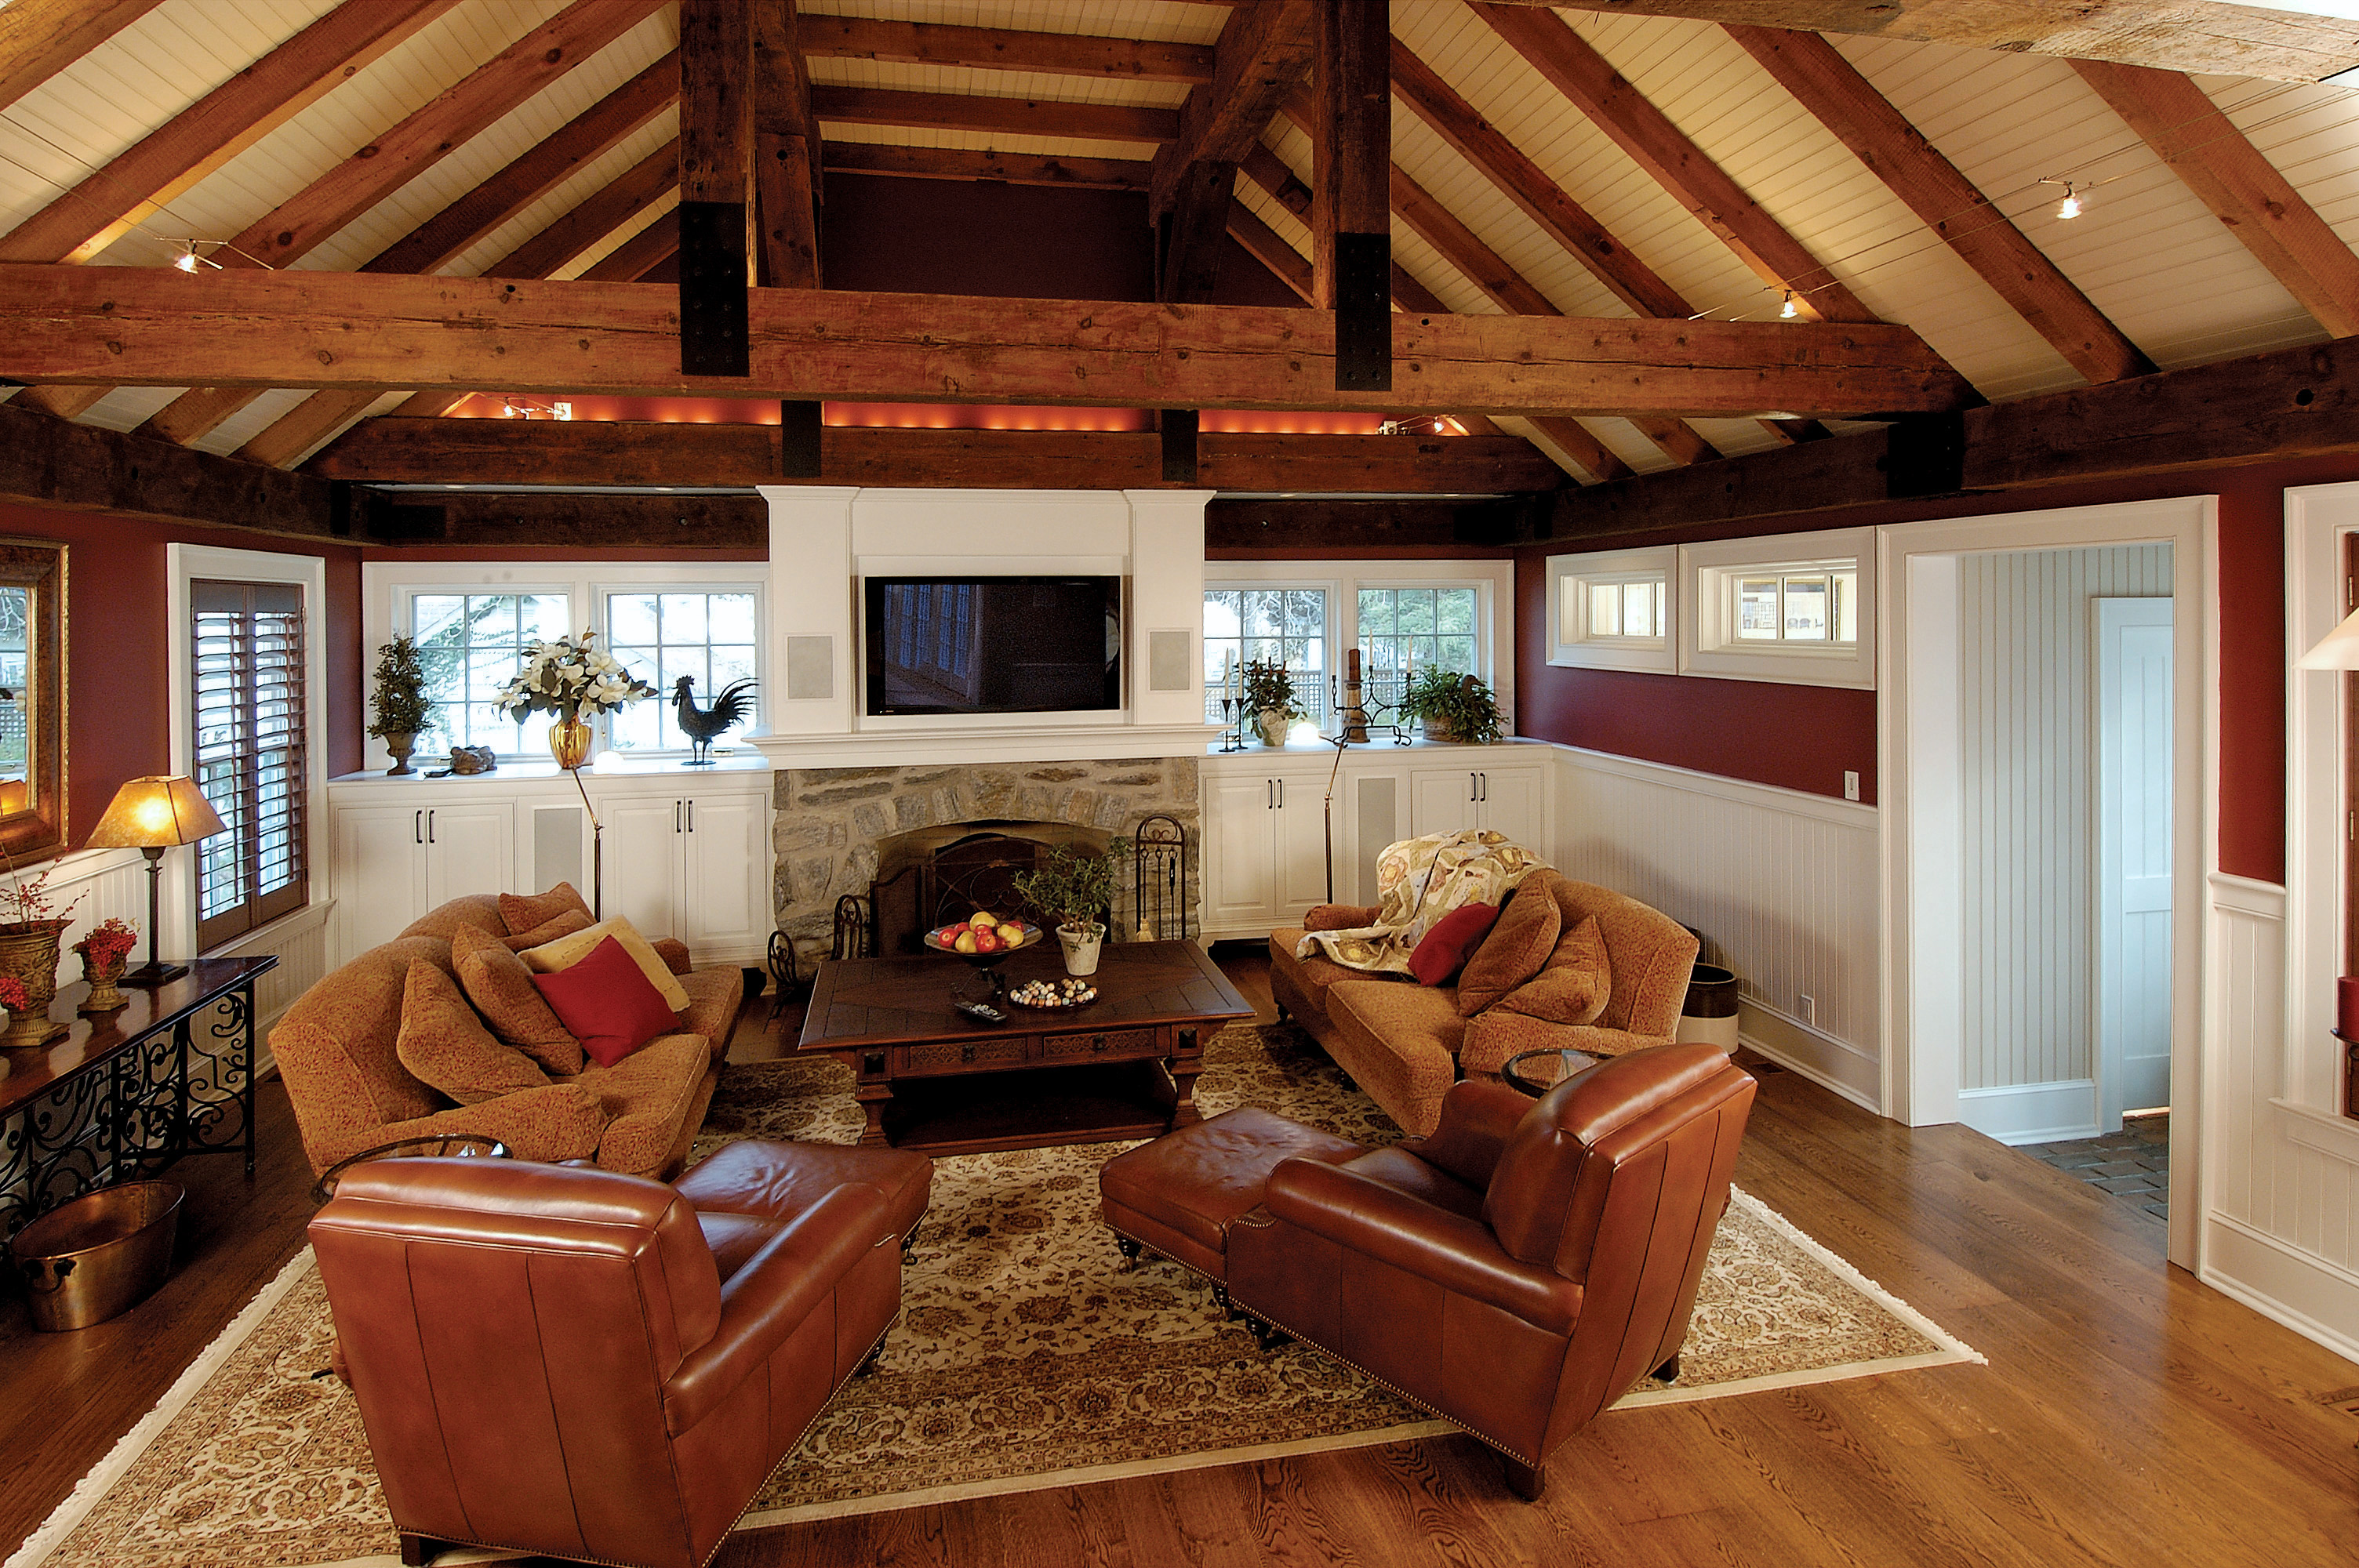 Family room addition with rustic beams and vaulted ceiling for Great ceiling ideas